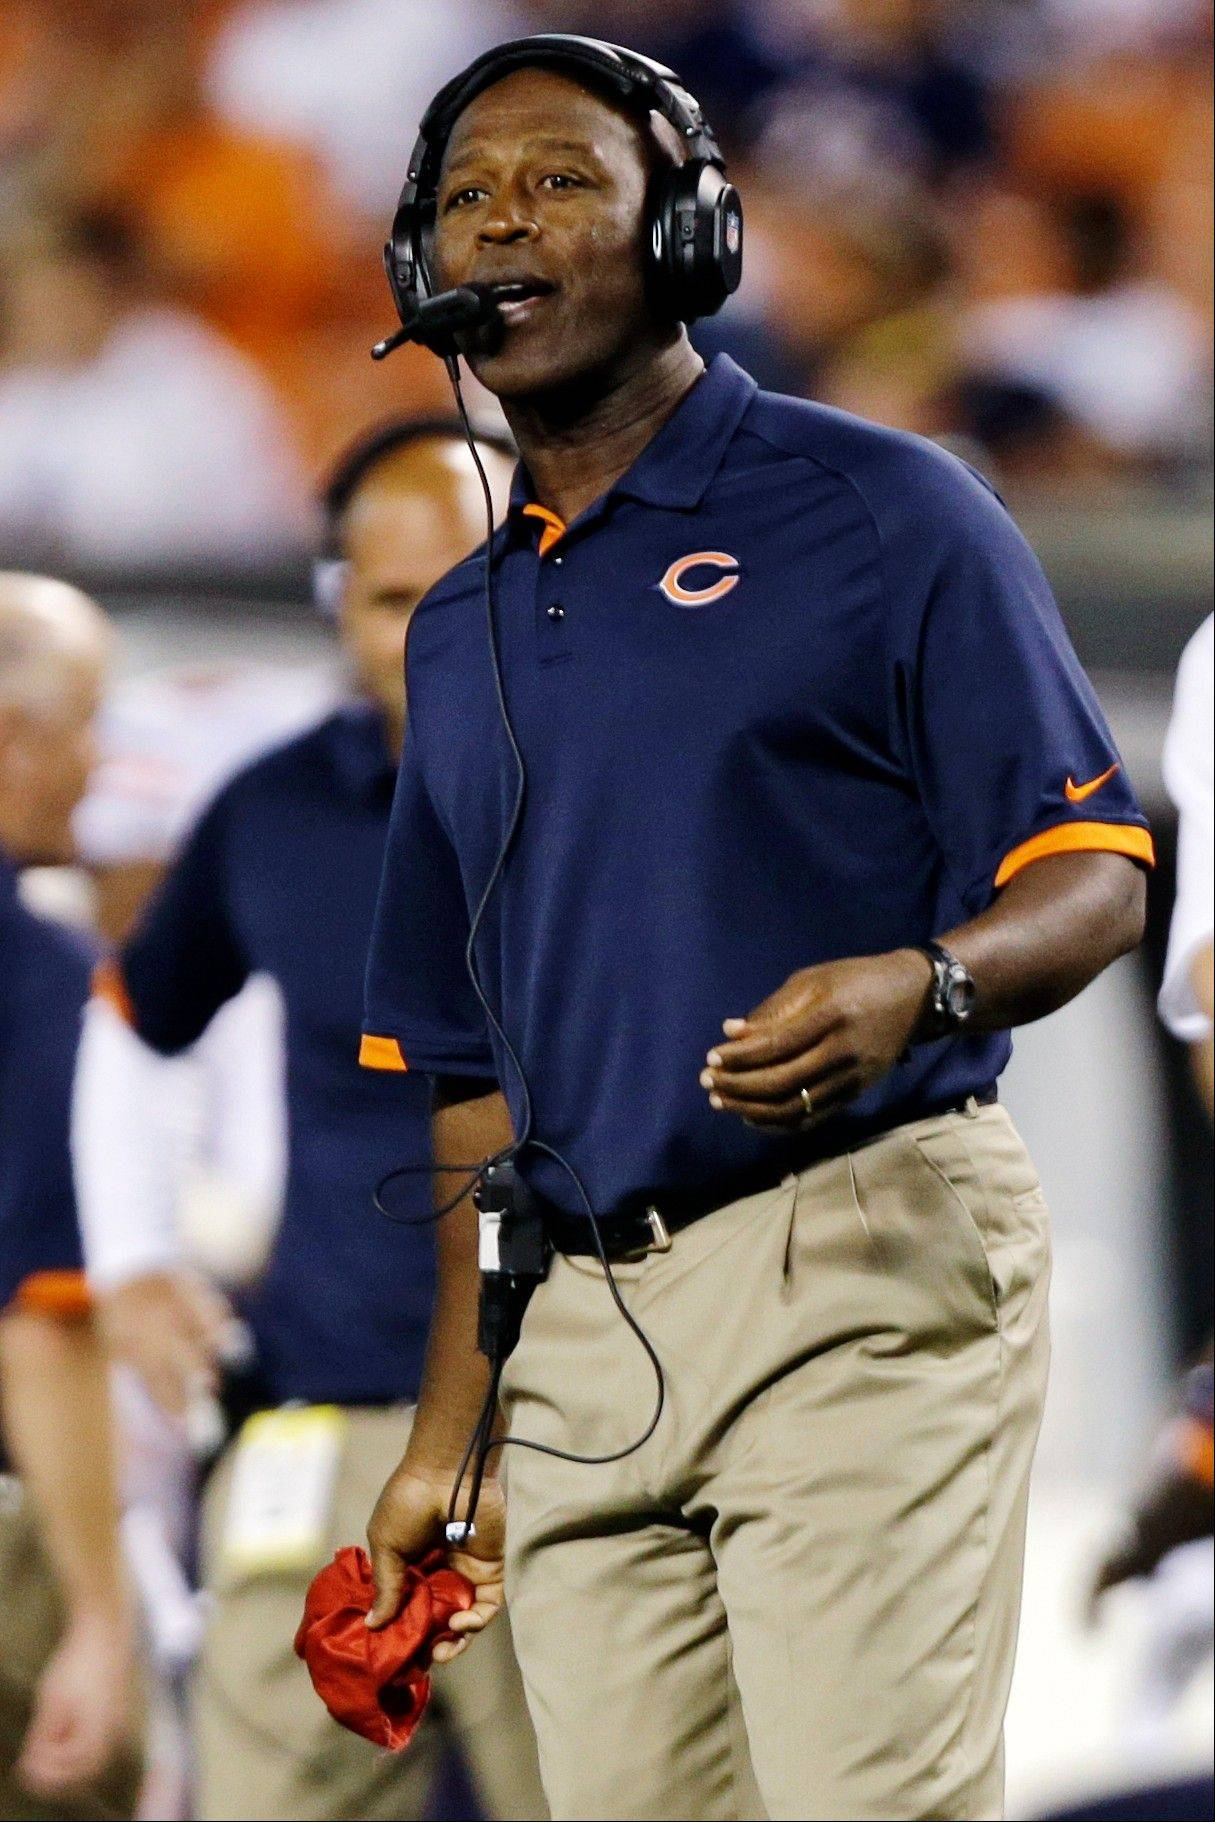 He may like his team a lot, but Bears head coach Lovie Smith has to recognize the key issues facing the Bears this season and address them in order to contend for the NFC North title.